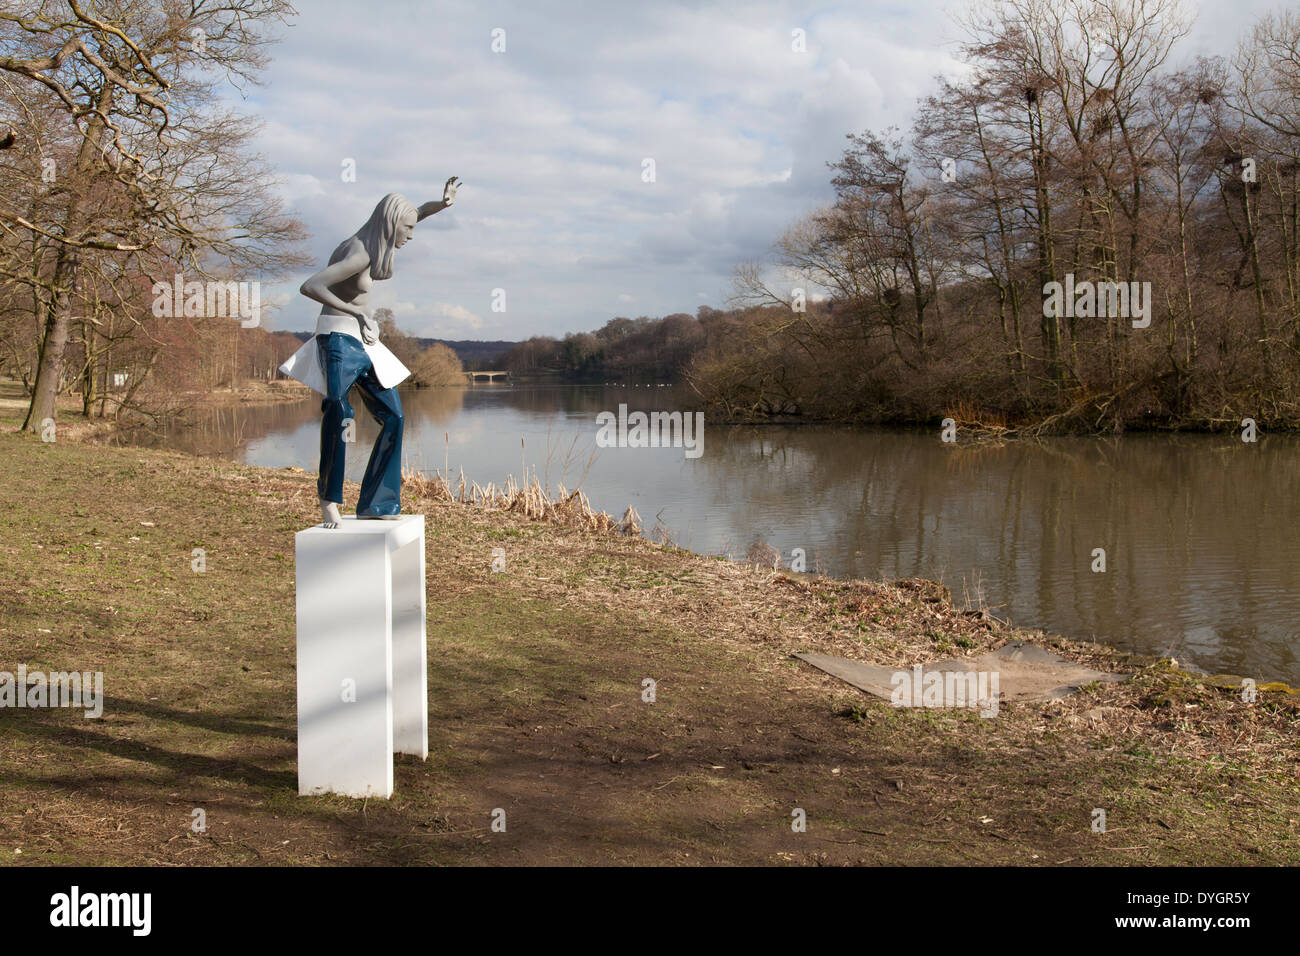 Woodland Spirit Diana by  Lucy & Jorg Orta at Yorkshire Sculpture Park, UK - Stock Image